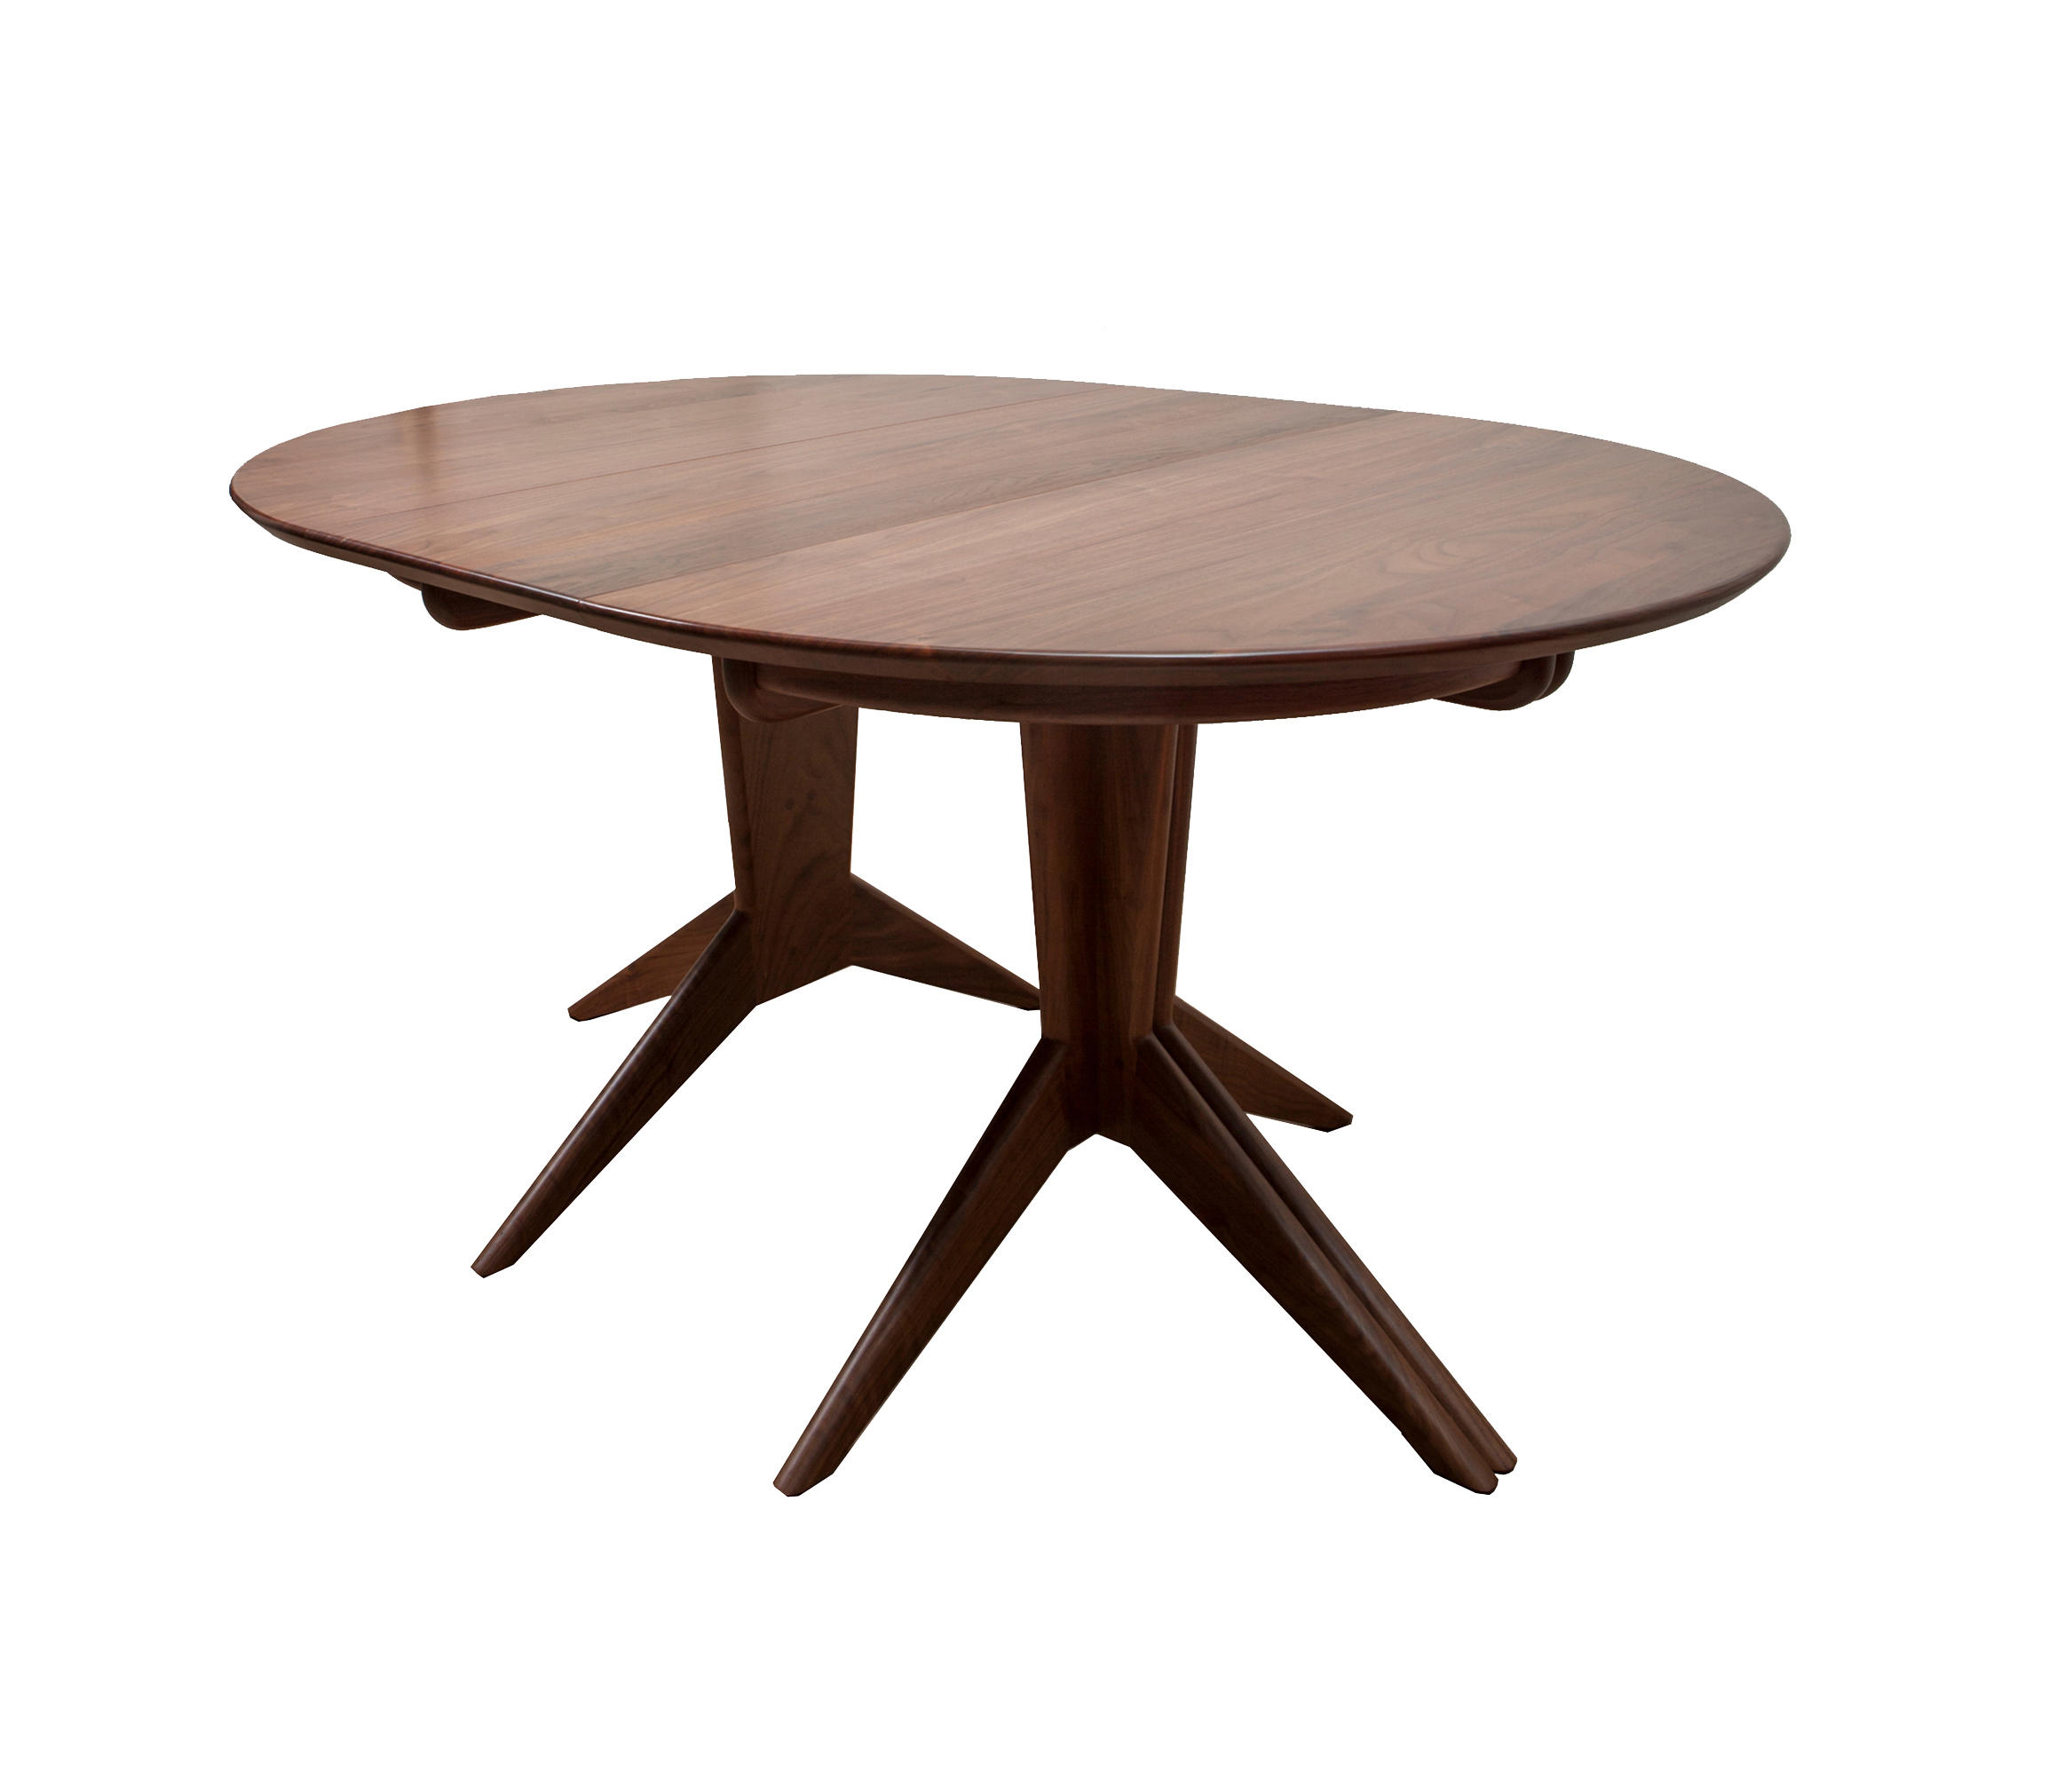 Pedestal extension dining table dining tables from for Pedestal table